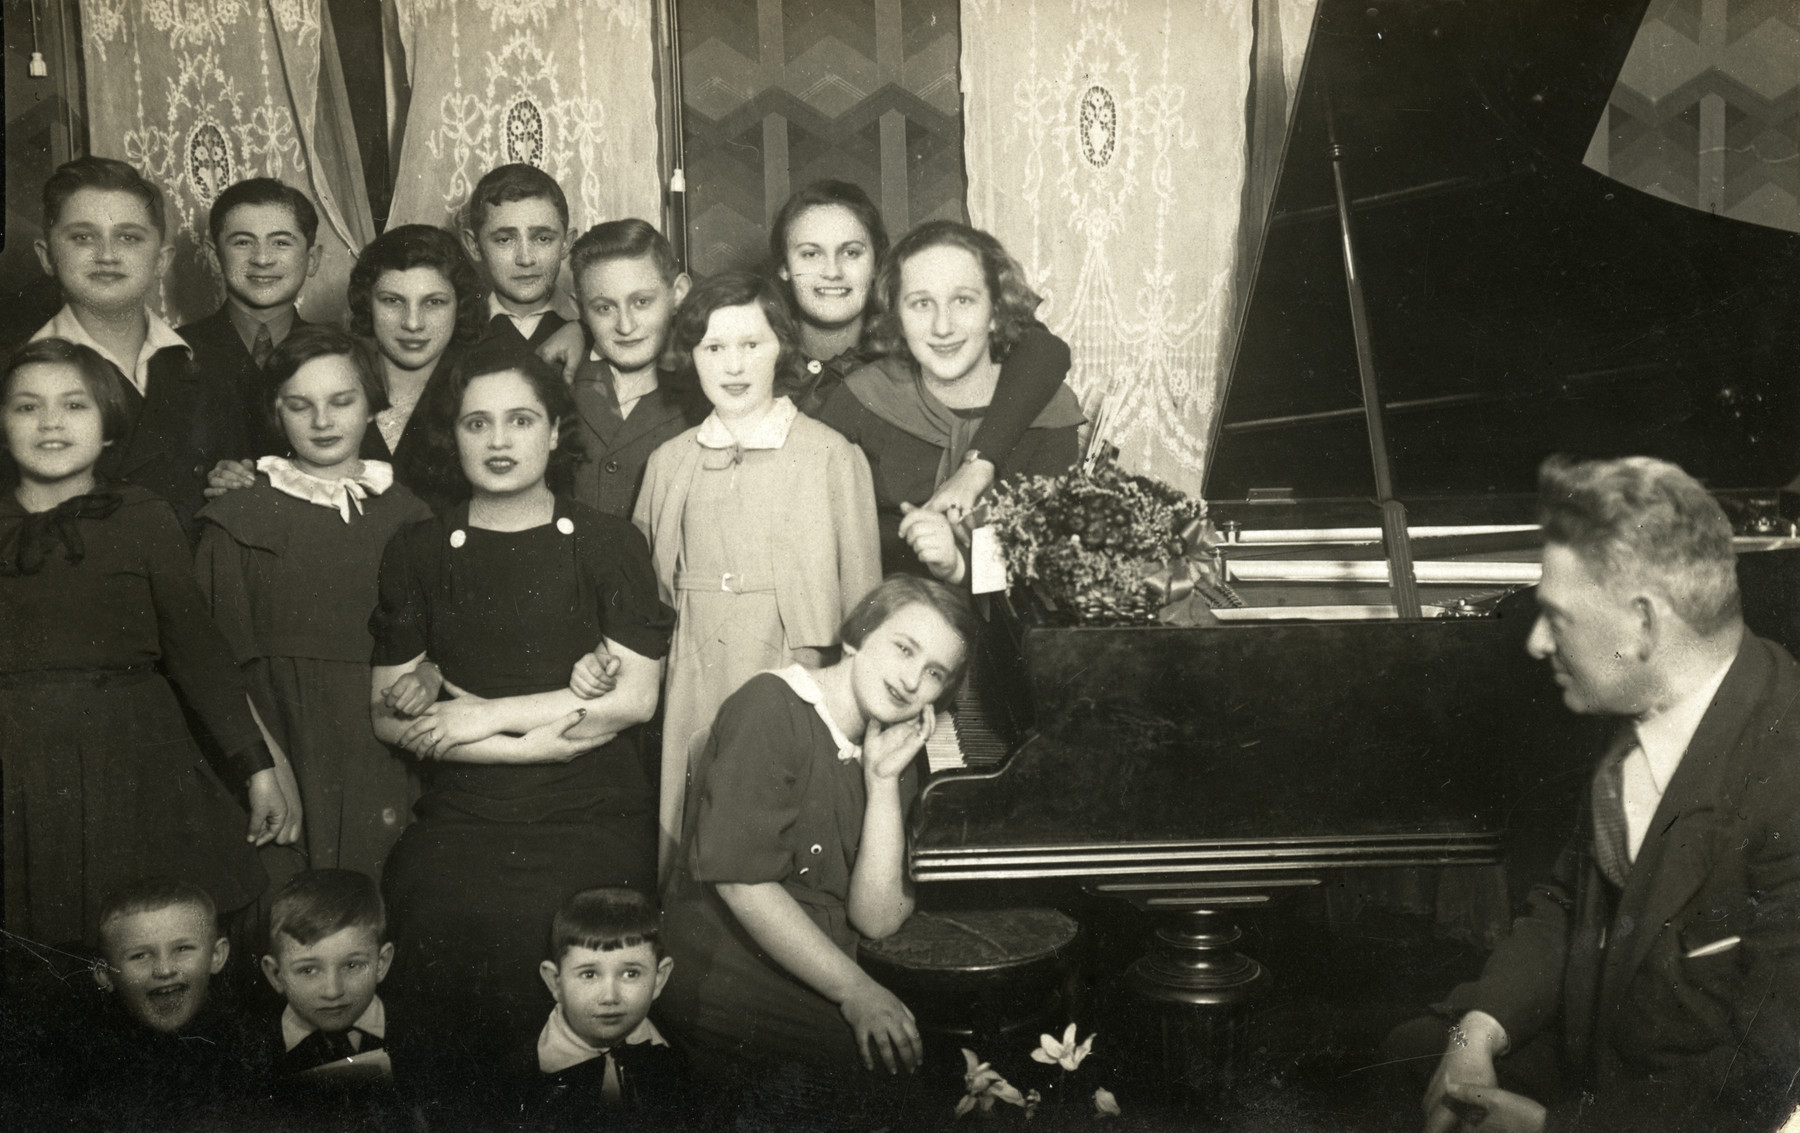 Group portrait of piano students and their teacher.  Ewa Kracowska is standing next to the piano, wearing a light-colored dress. Her teacher, Fanya Kaplan, is standing on the far right. Julia Kracowska is in front, and Genya Lipkis is standing on the far left.